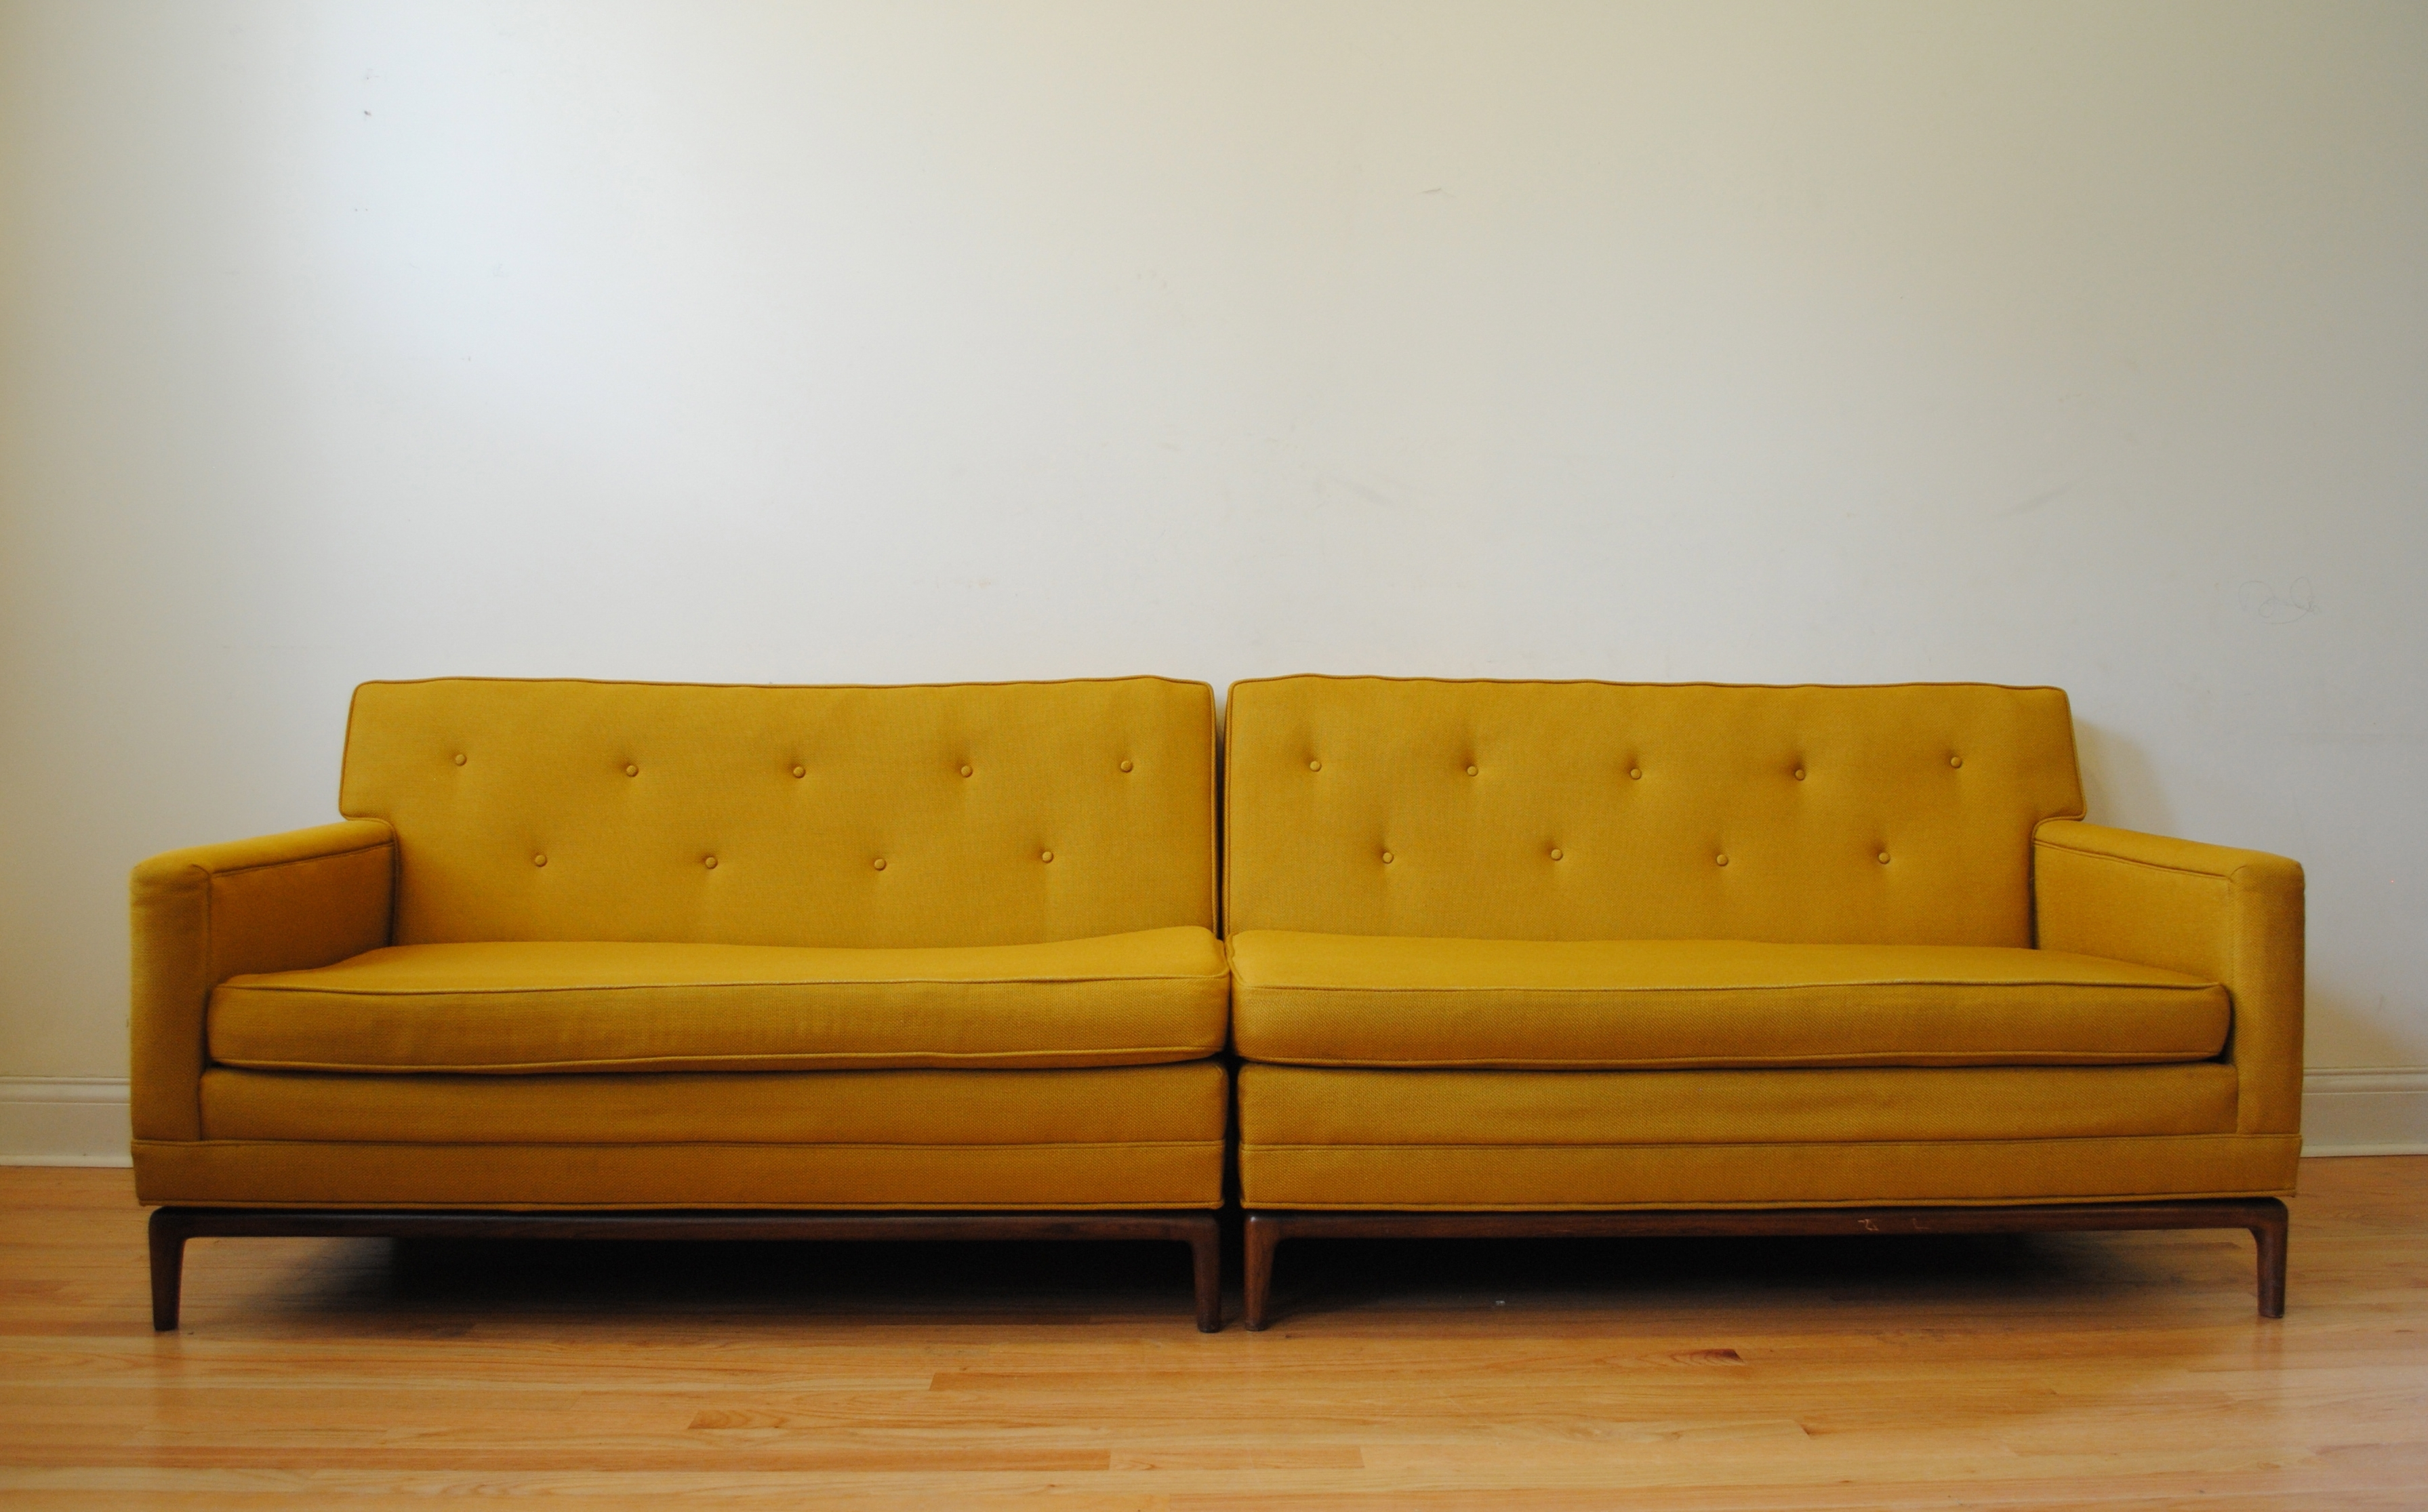 Most Recent Long Modern Sofa – Home And Textiles Throughout Long Modern Sofas (View 13 of 15)